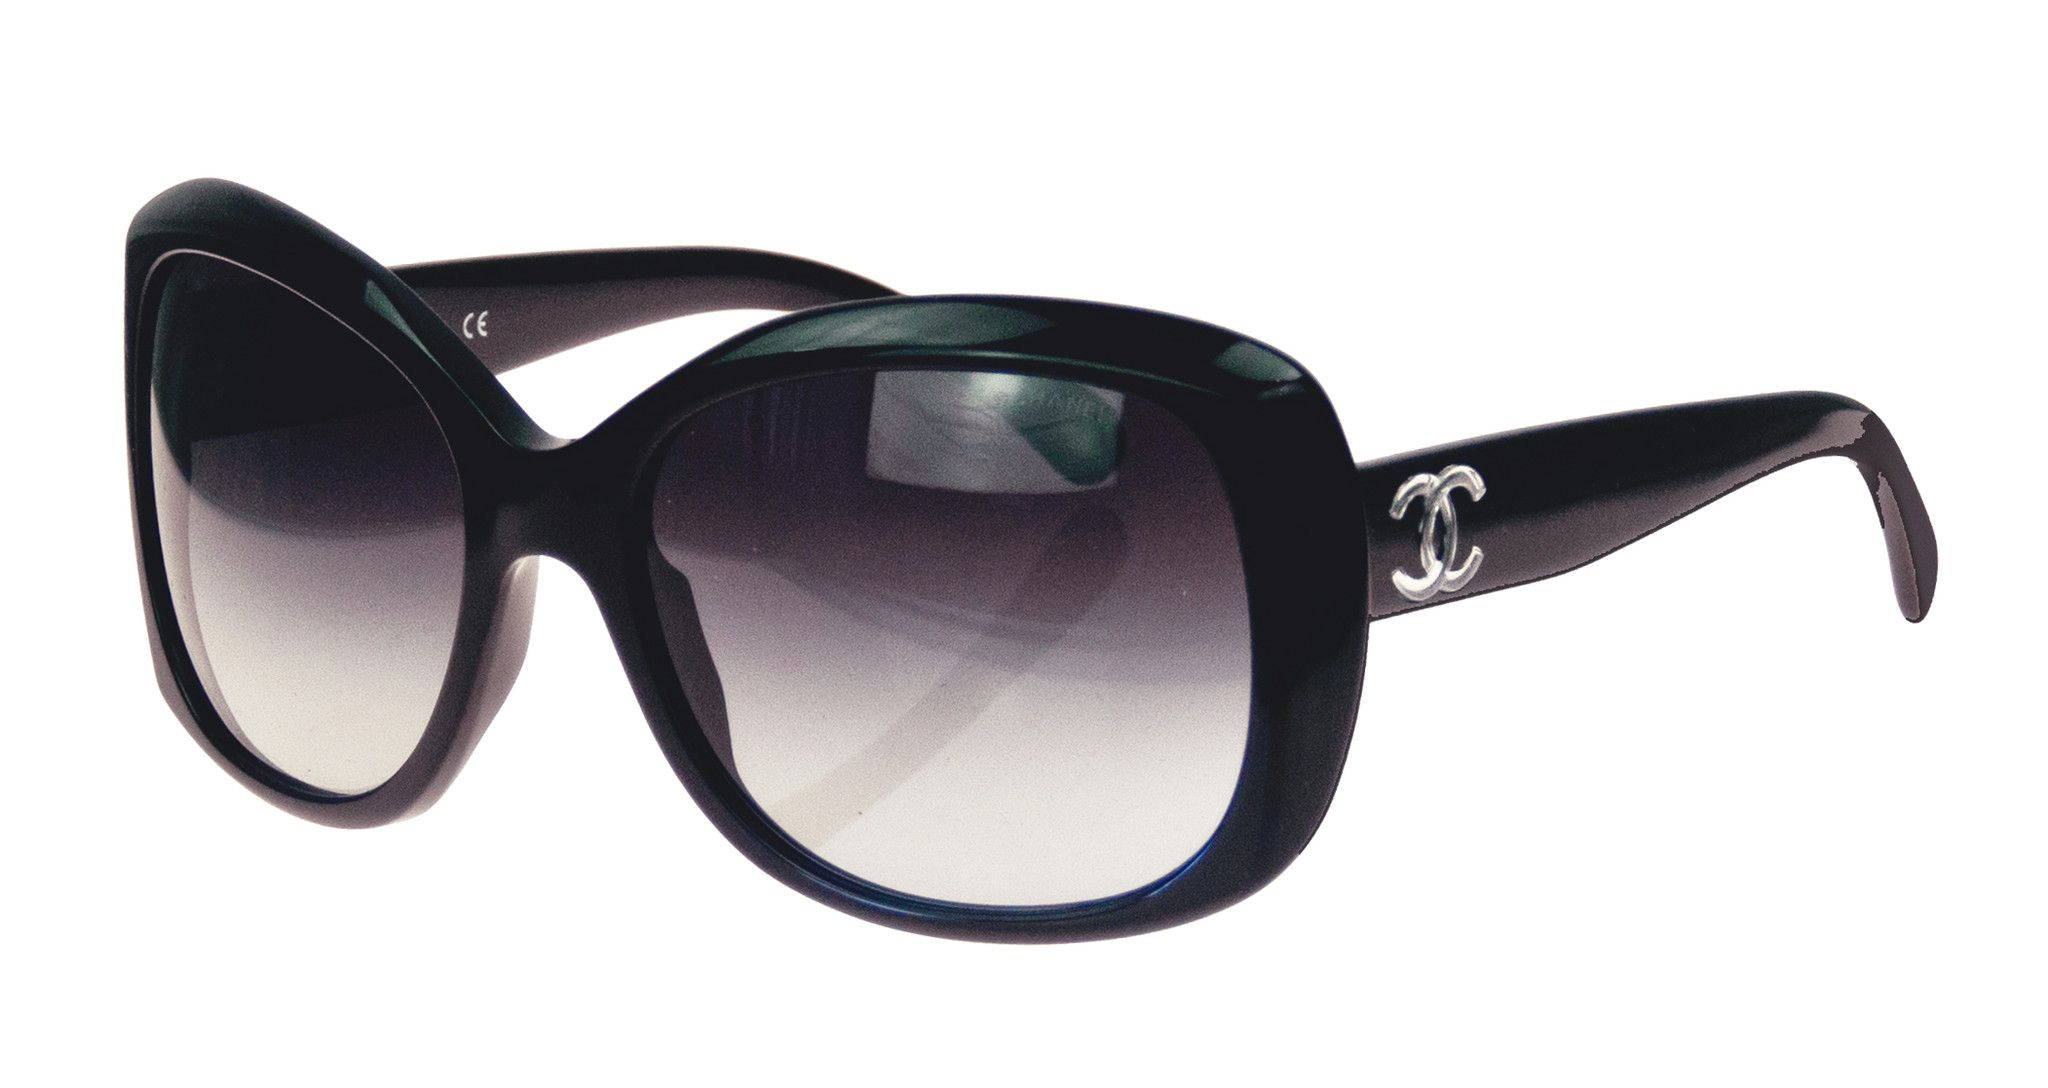 cfa879ec6fe3 Chanel 5183 Black Sunglasses Gordon stuart